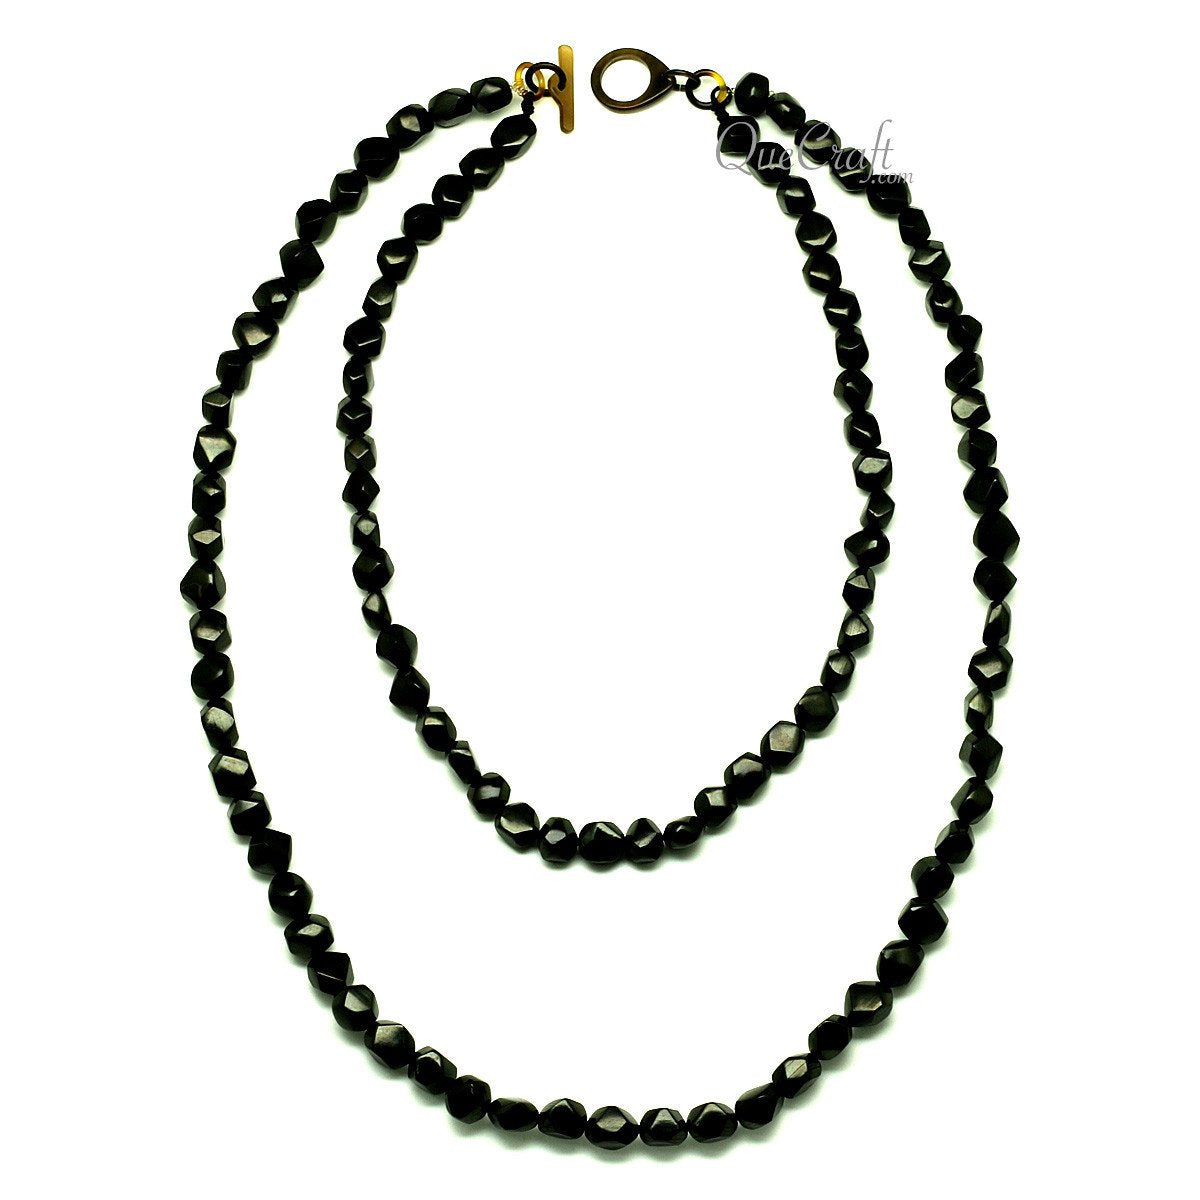 Horn Beaded Necklace #12922 - HORN.JEWELRY by QueCraft